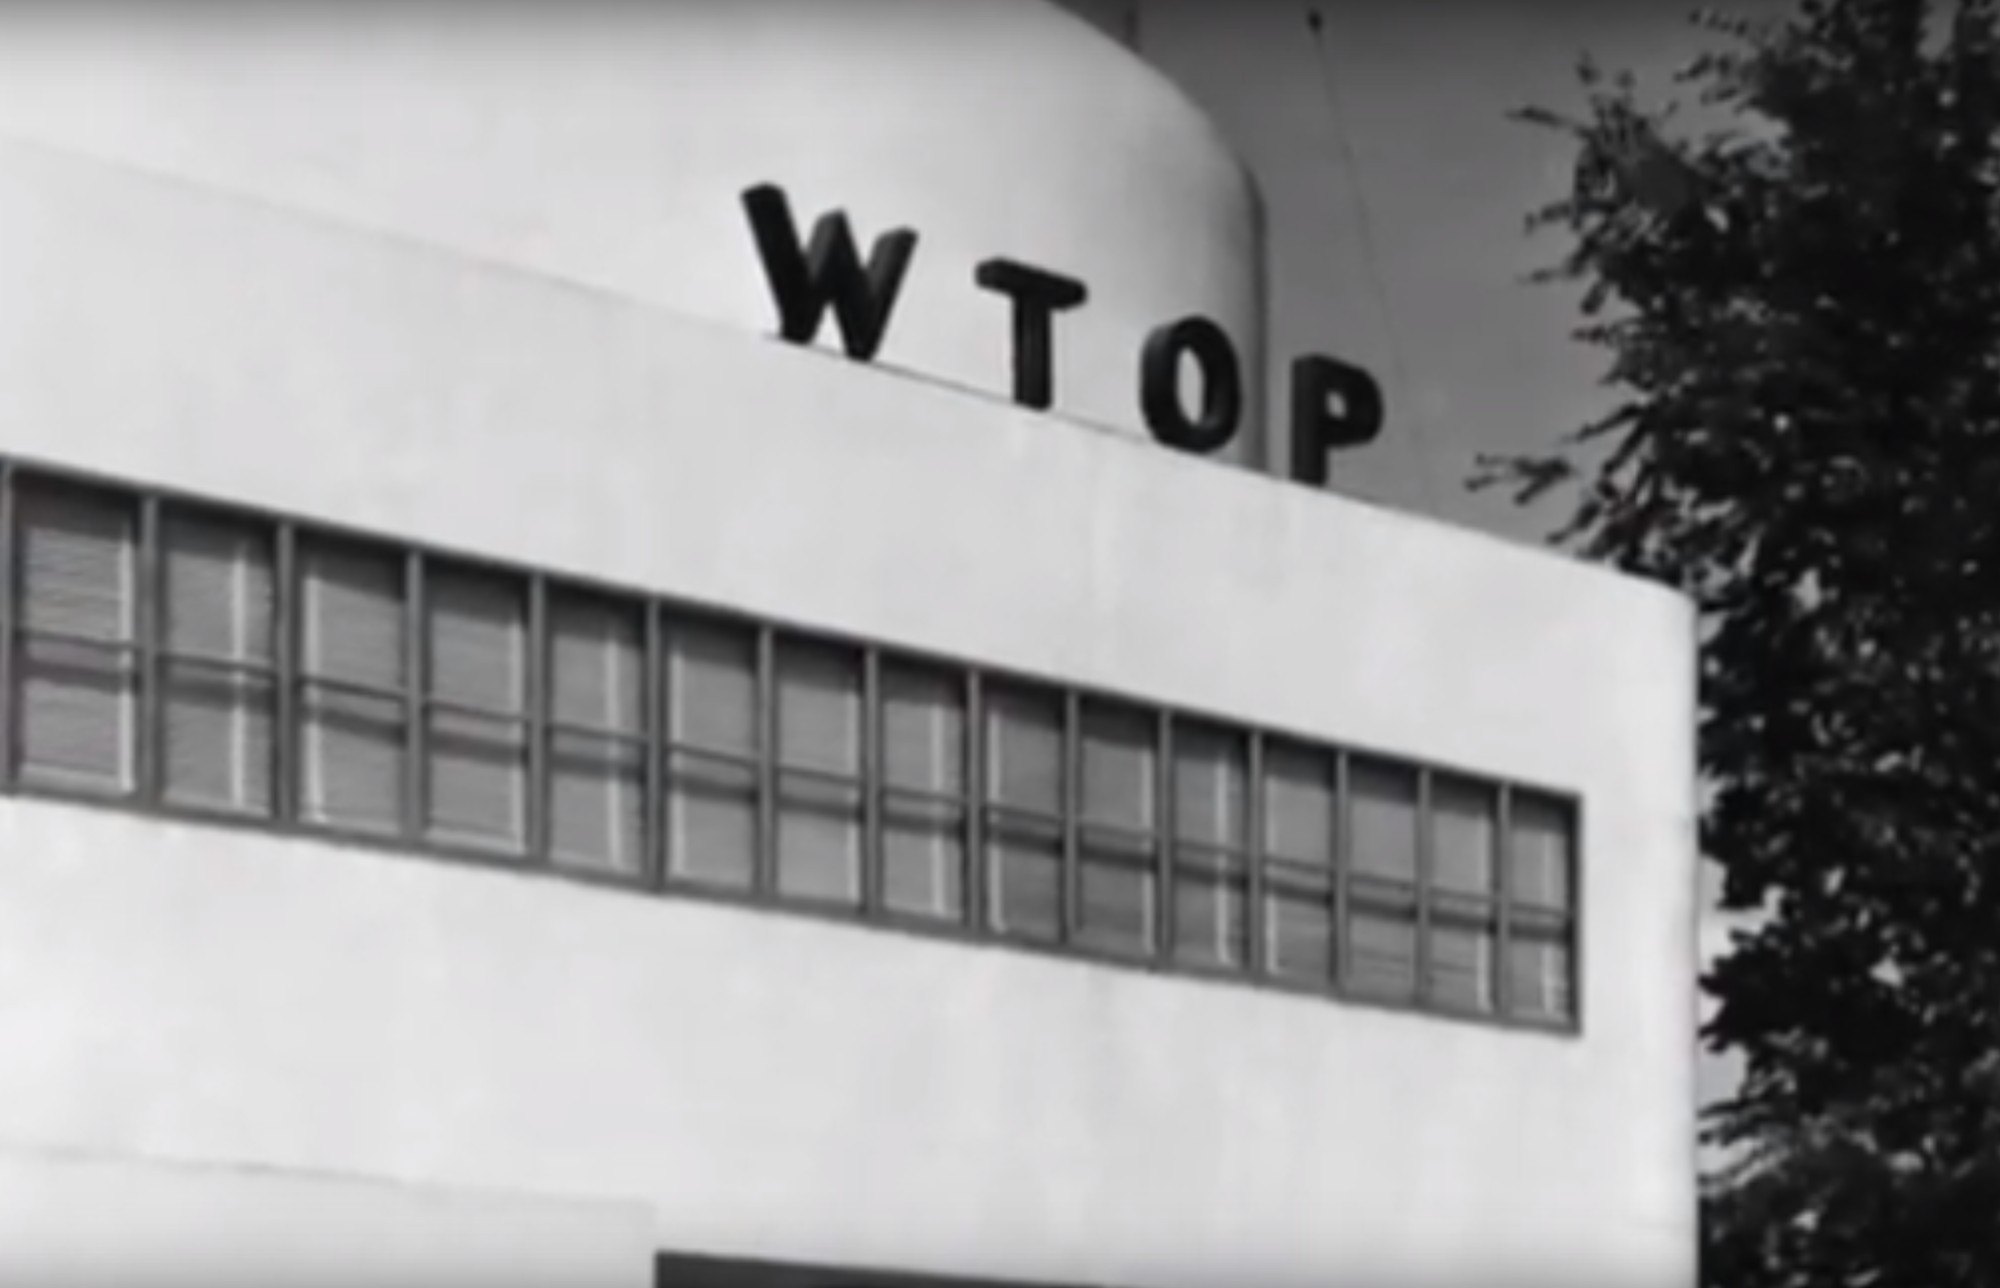 Wondrous Wtop Looks Back At 50 Years Of All News Radio Wtop Gmtry Best Dining Table And Chair Ideas Images Gmtryco